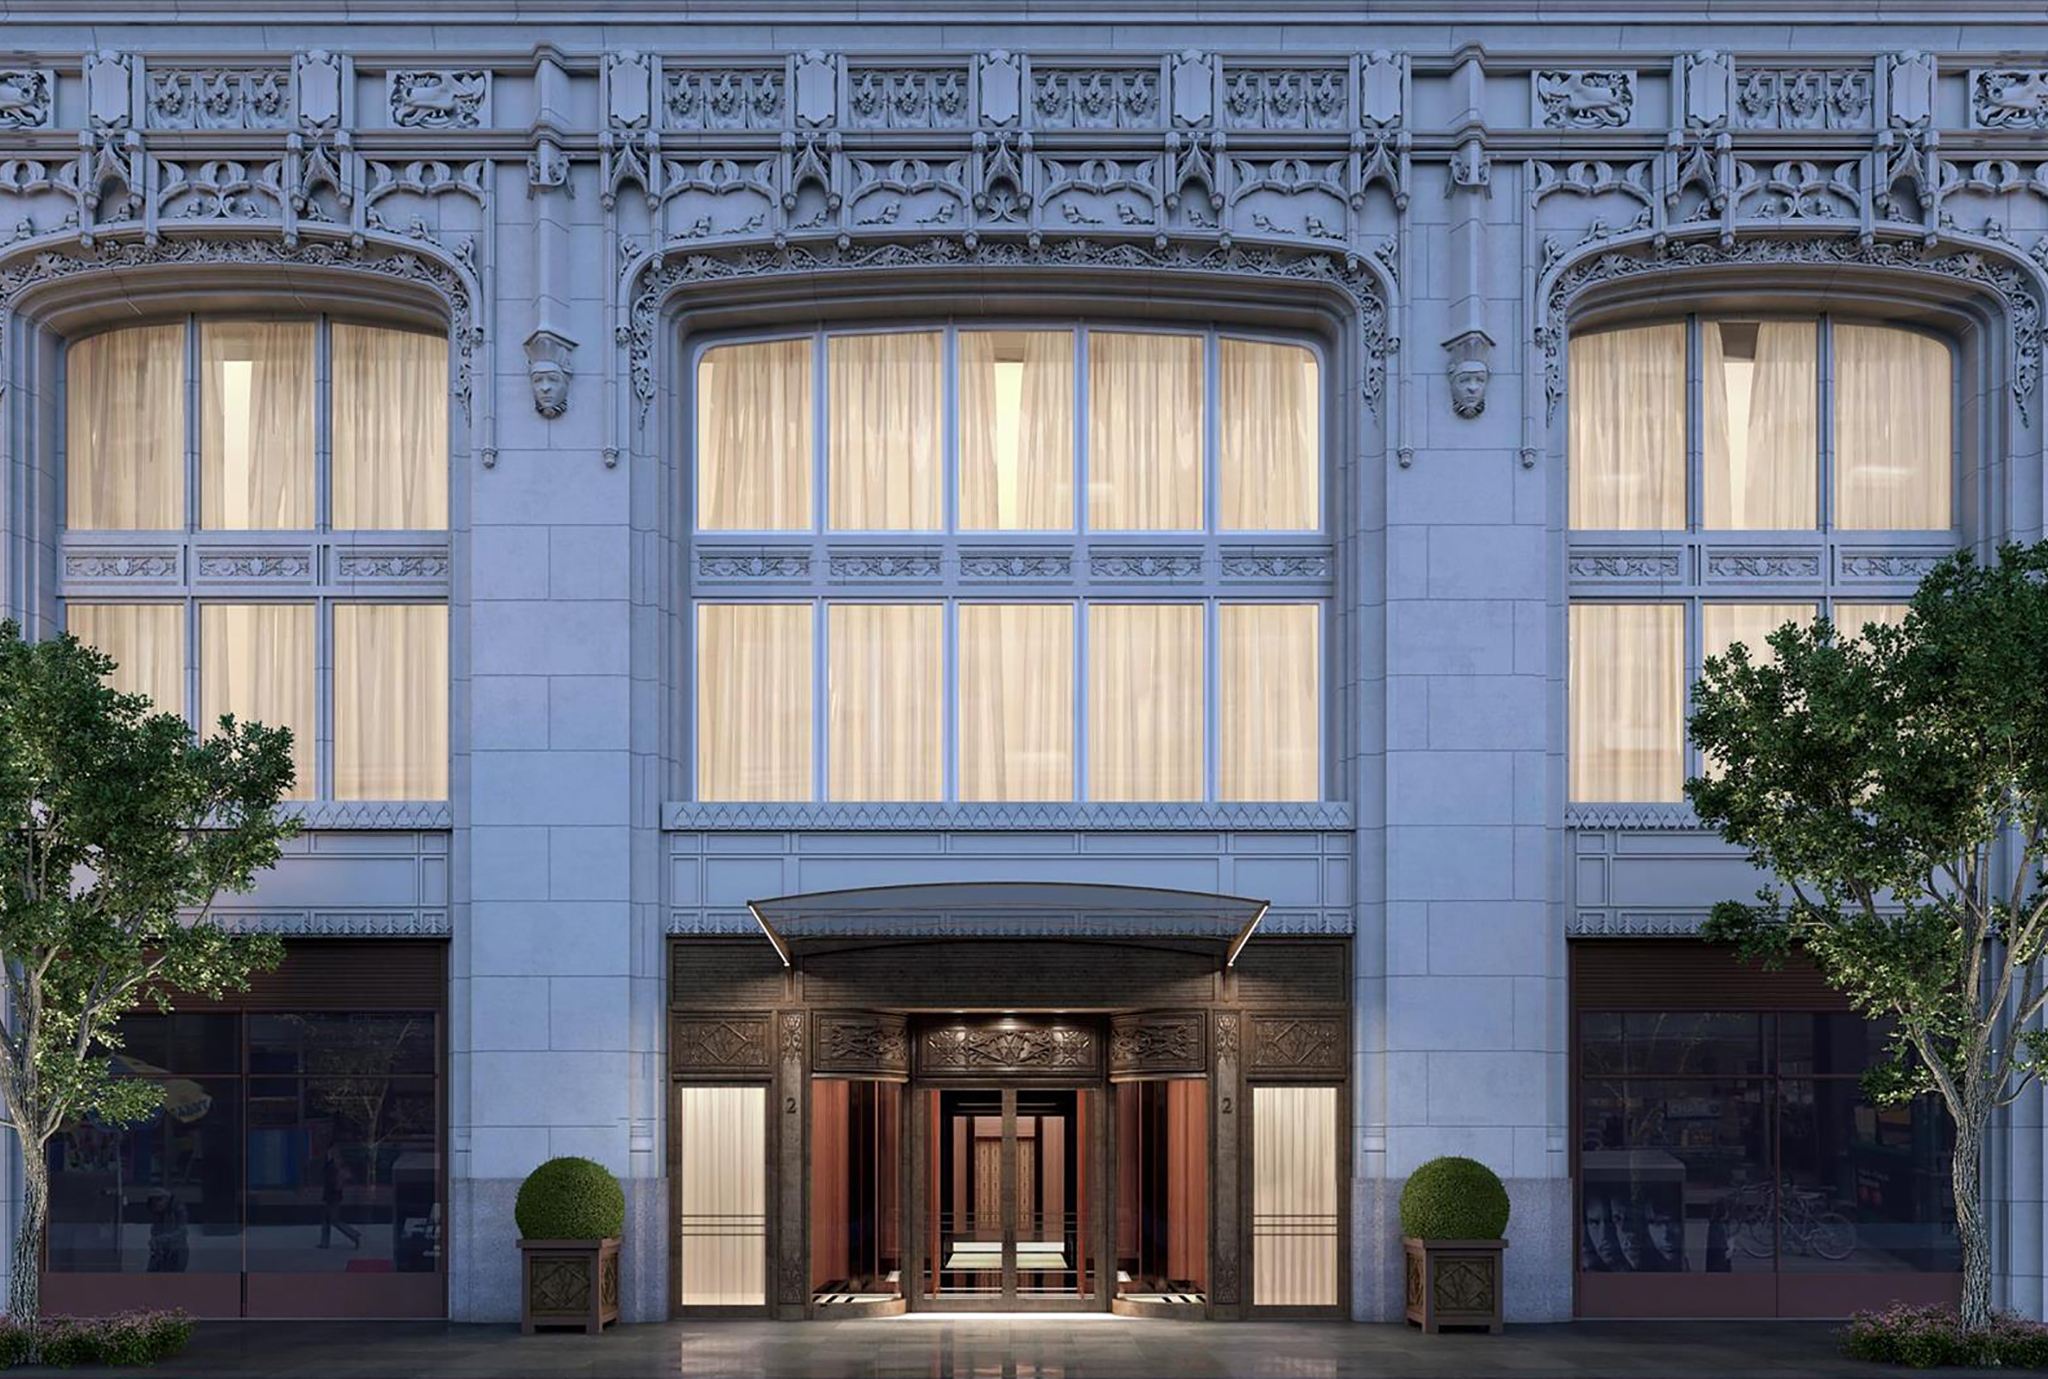 NYCCondosforsale_TheWoolworthTowerResidences_Exterior_Building_Architecture_Entrance